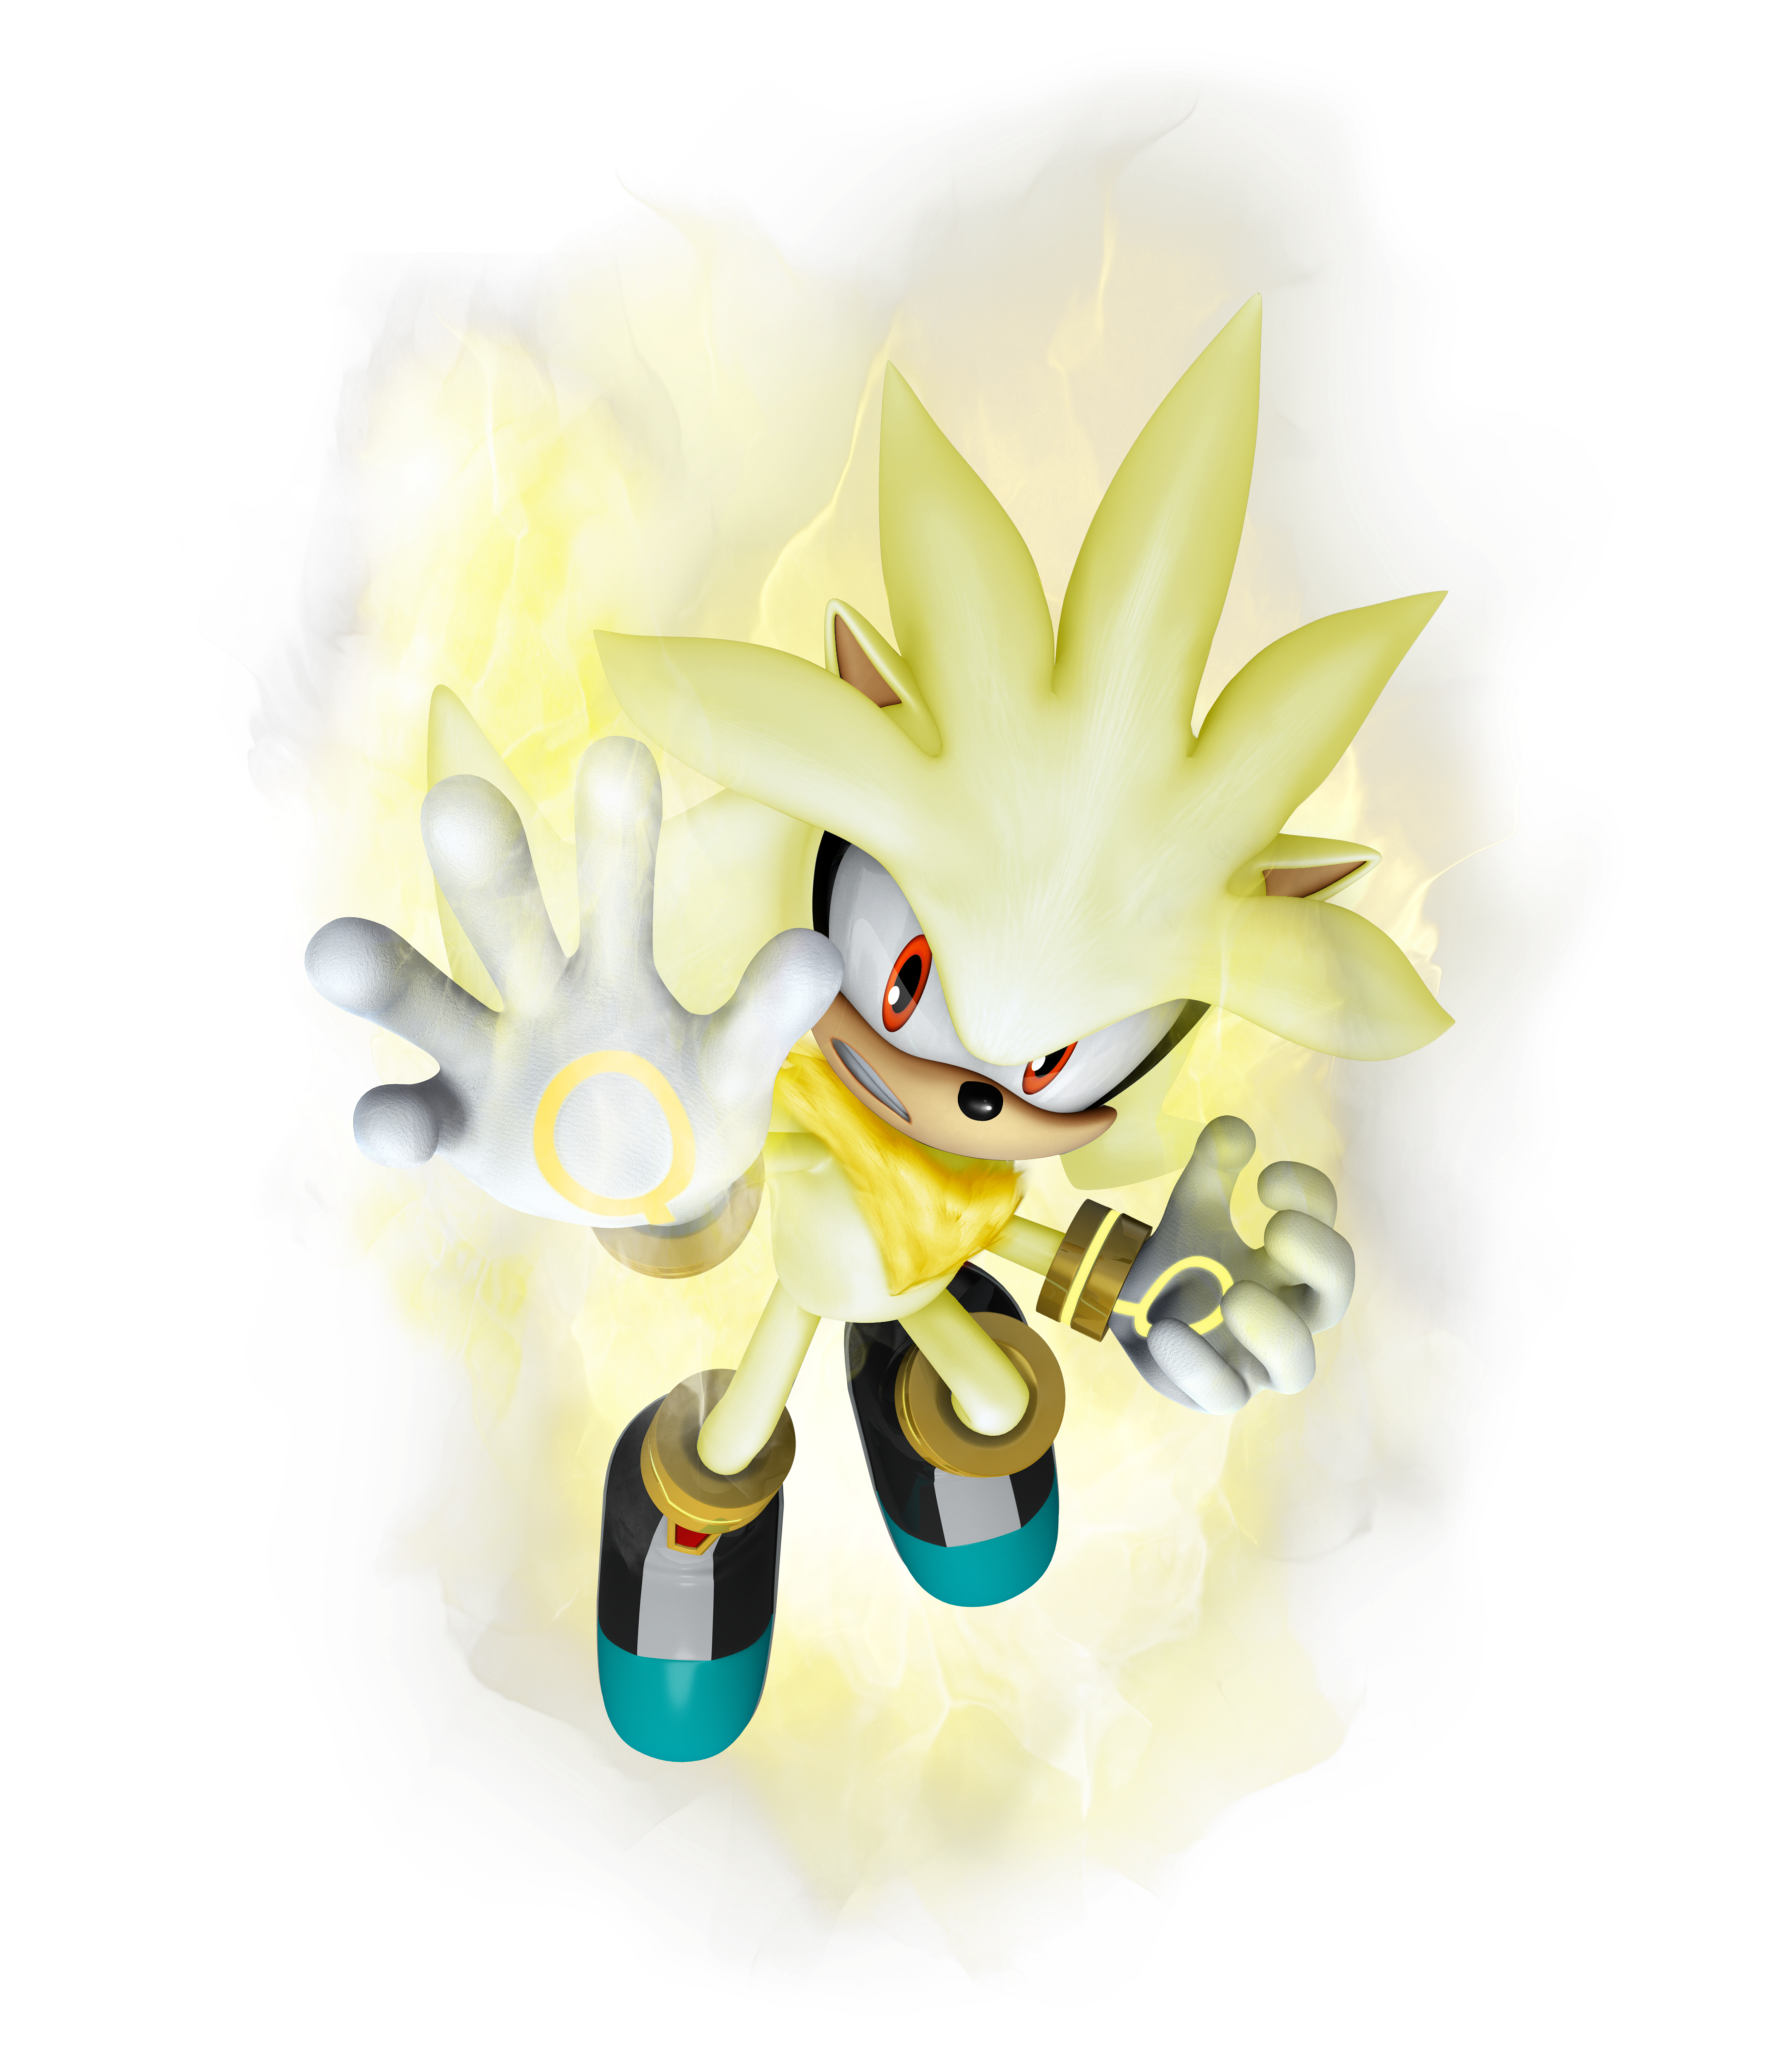 ... .org/gallery/silver-the-hedgehog/sonic-the-hedgehog-super-silver.png